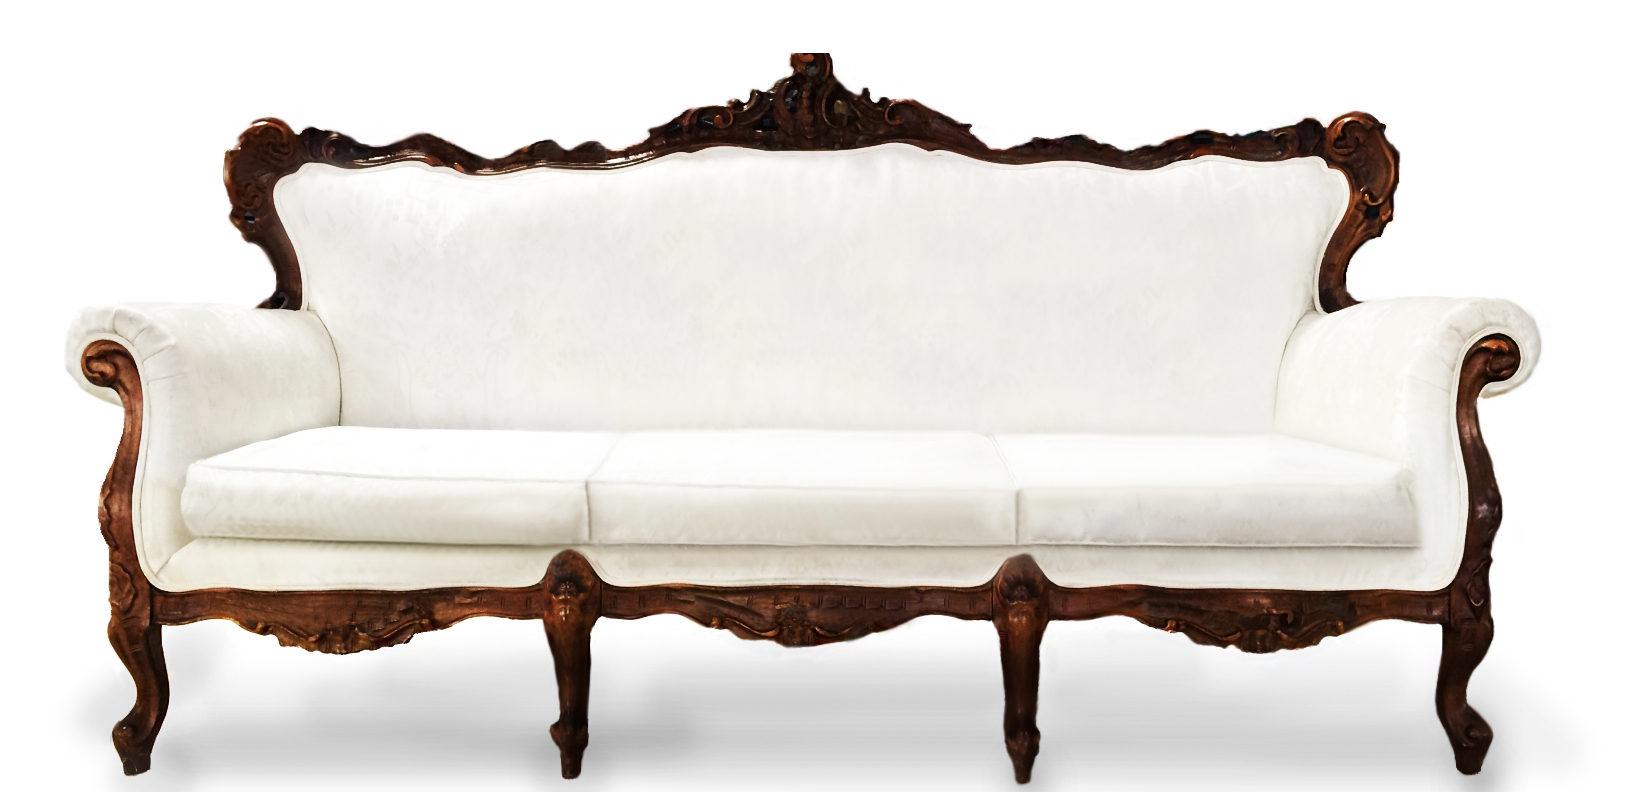 Upholstered Venetian Couch